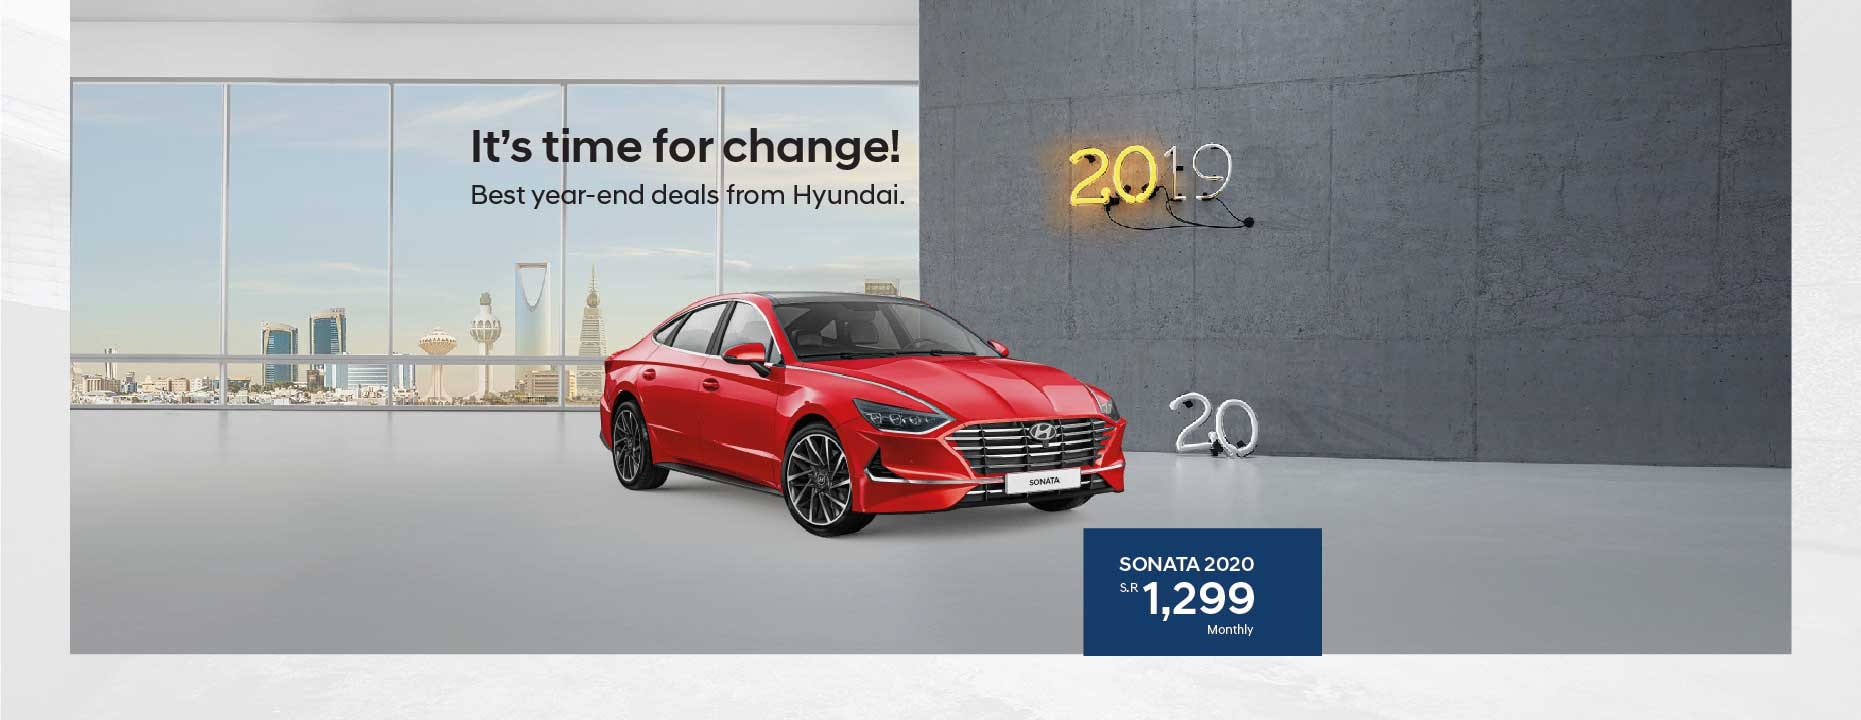 It's time for change! Best year-end deals from Hyundai.